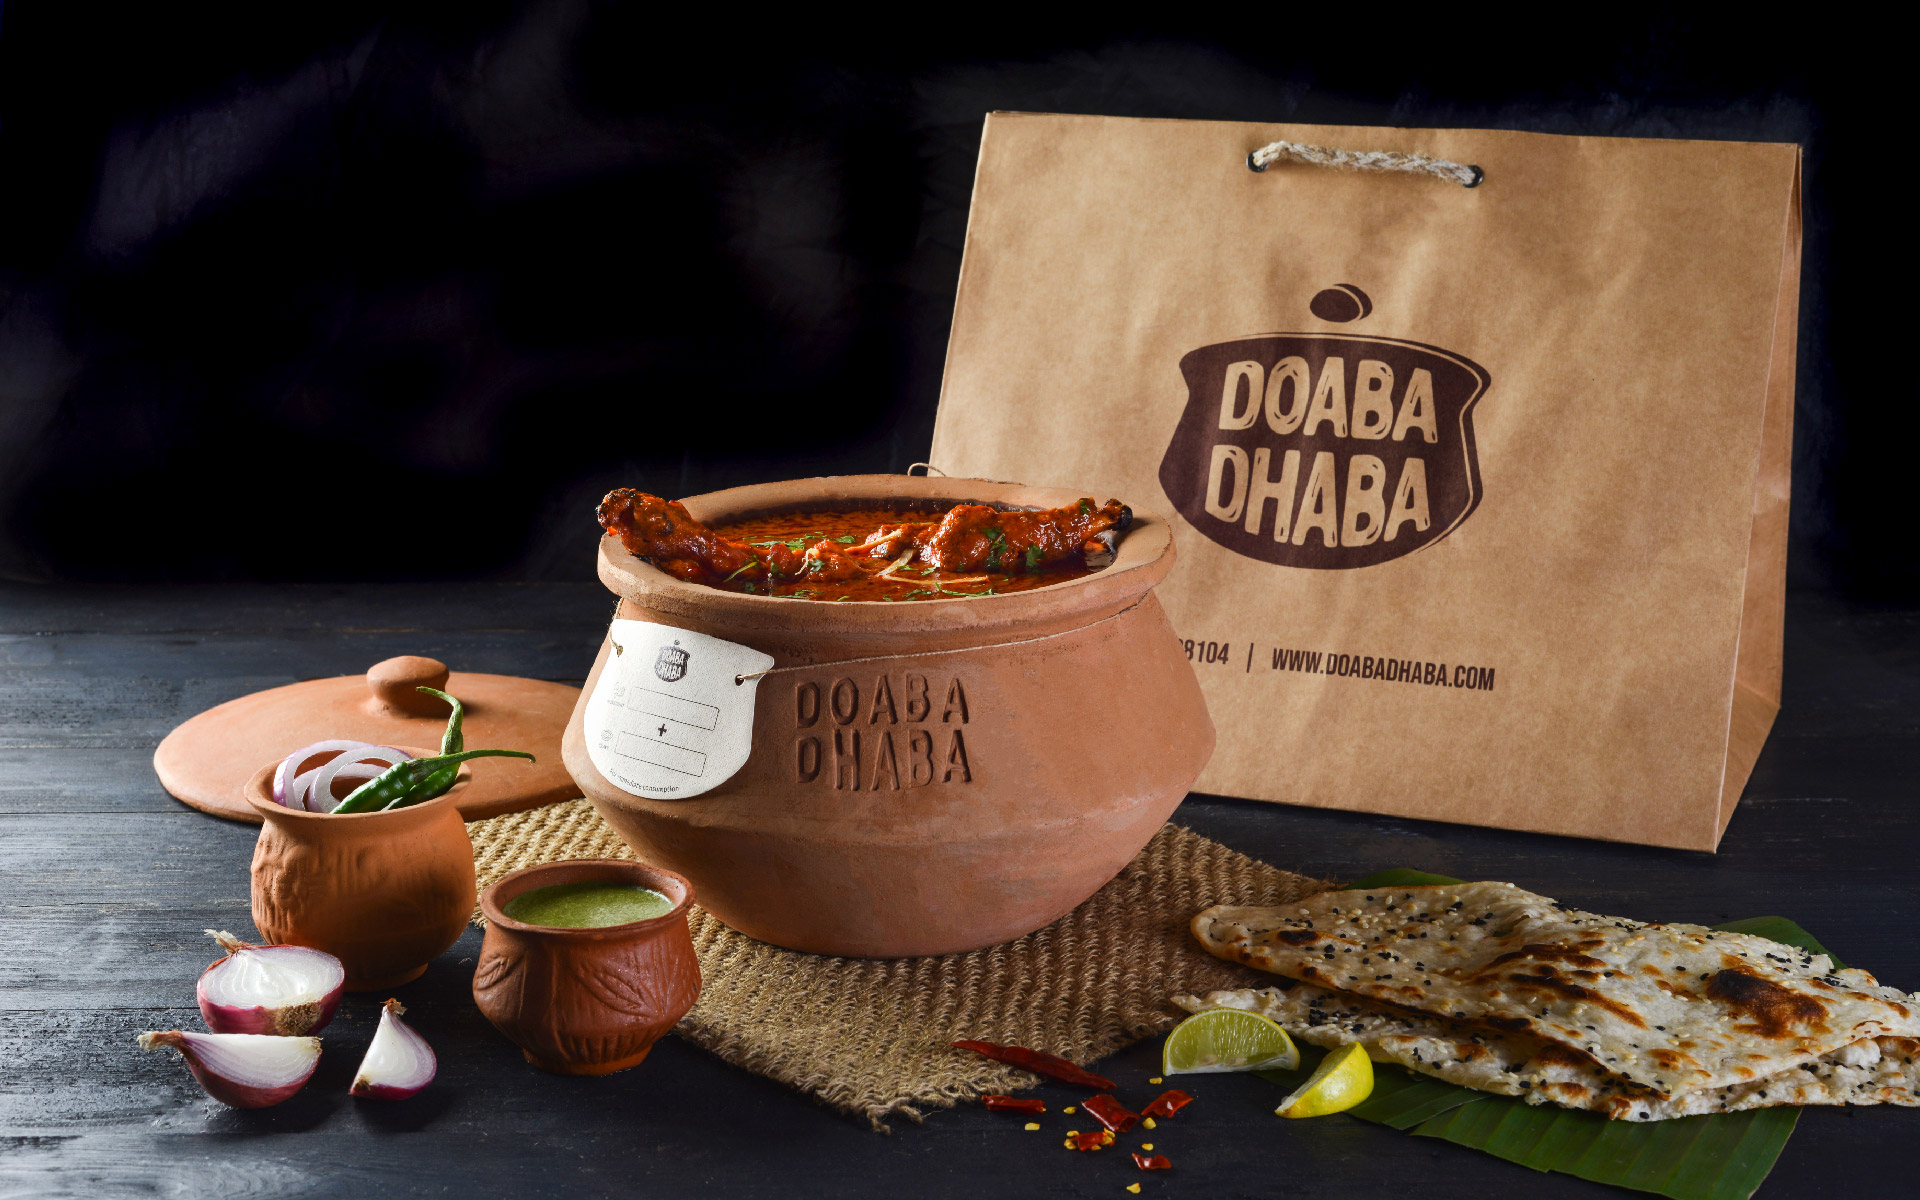 Brand Identity and Packaging Design for Doaba Dhaba Created by Akkshit Khattar